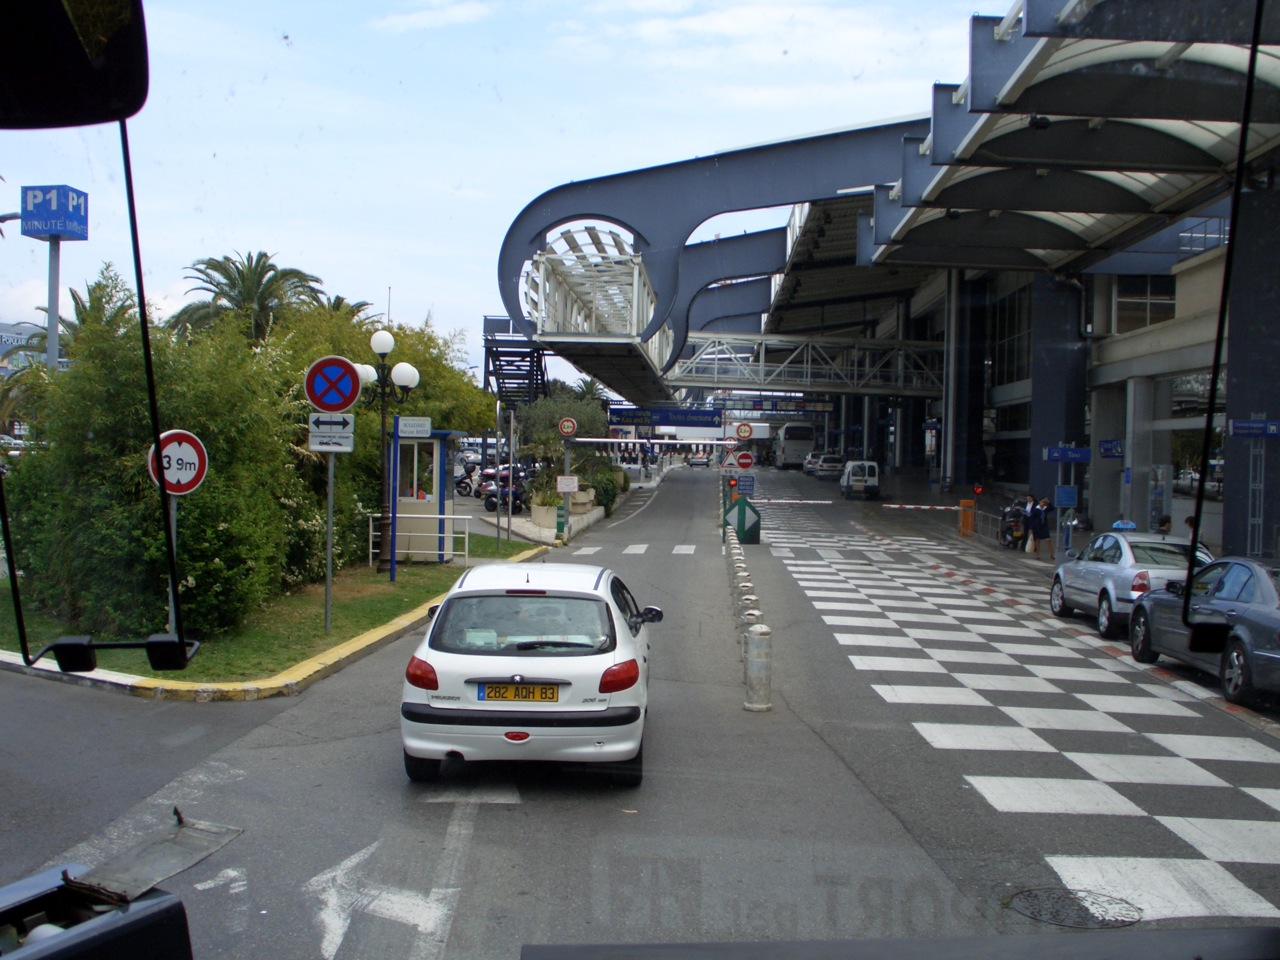 Parking P1, Aéroport de Nice-Côte d'Azur